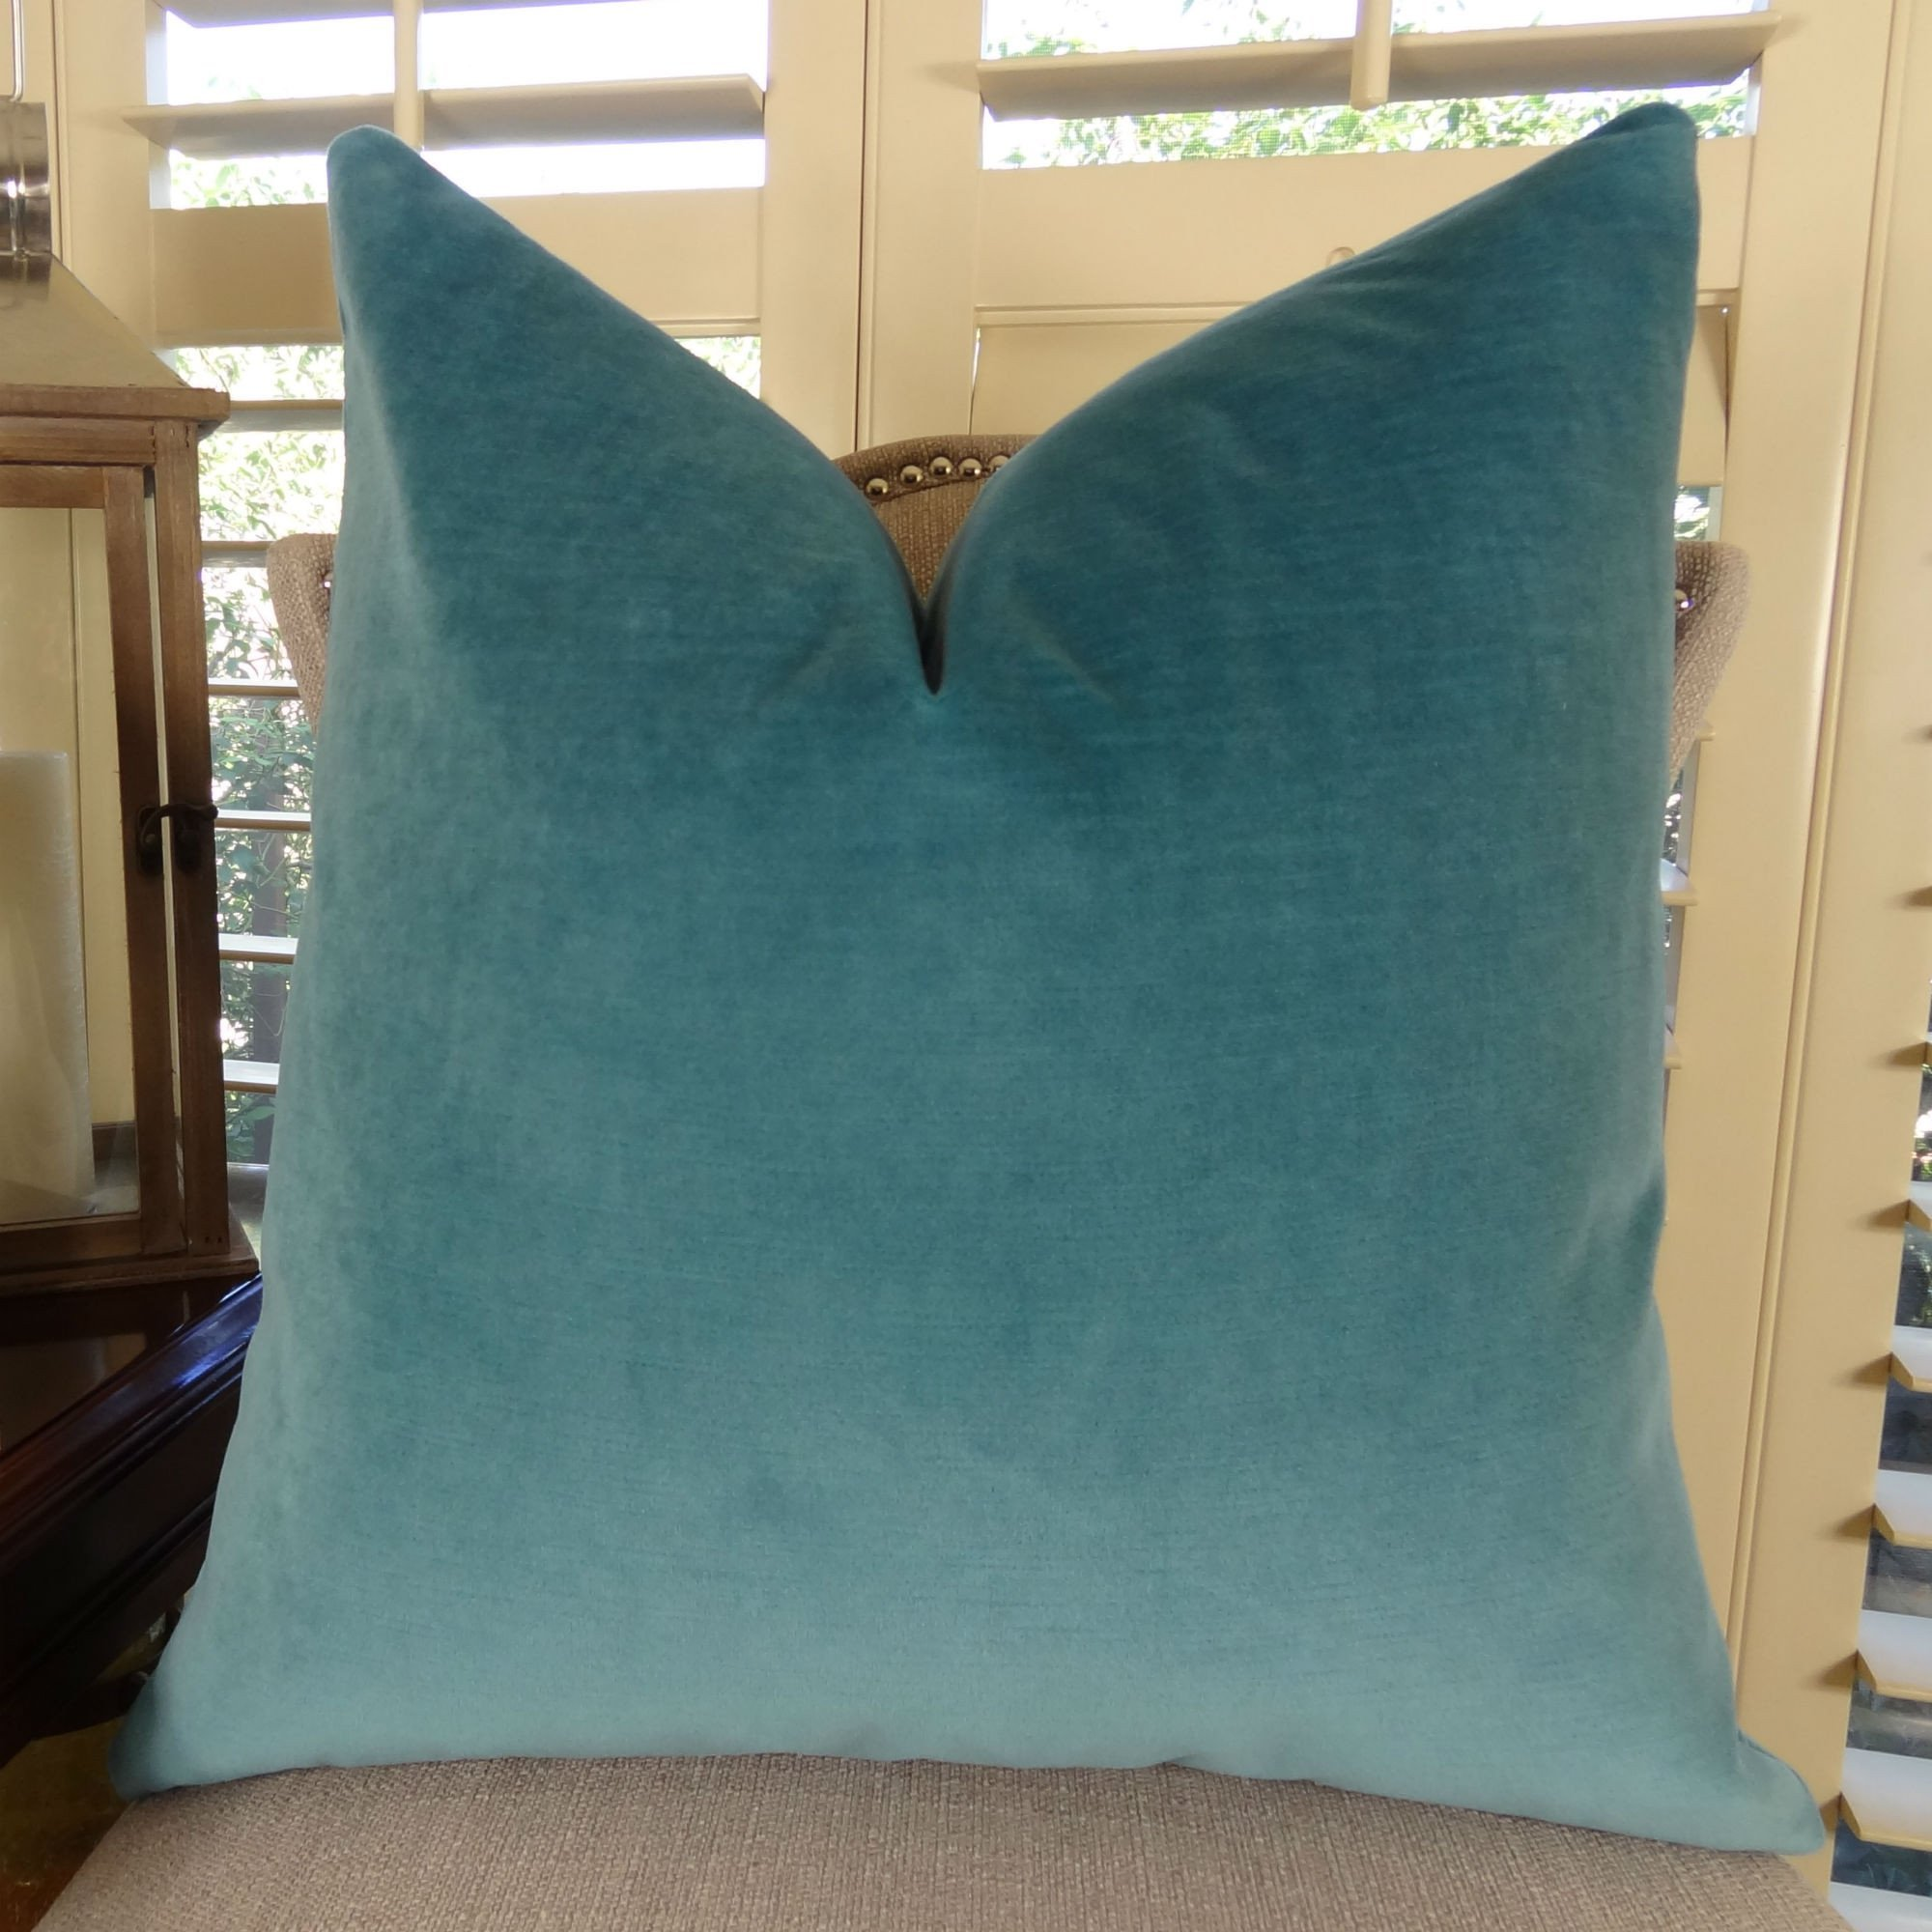 Thomas Collection handmade decorative pillows, luxury throw pillows, Teal Velvet Luxury Throw Pillow, Designer Double Sided Couch Pillow, COVER ONLY, NO INSERT, Made in America, 11381 by Thomas Collection